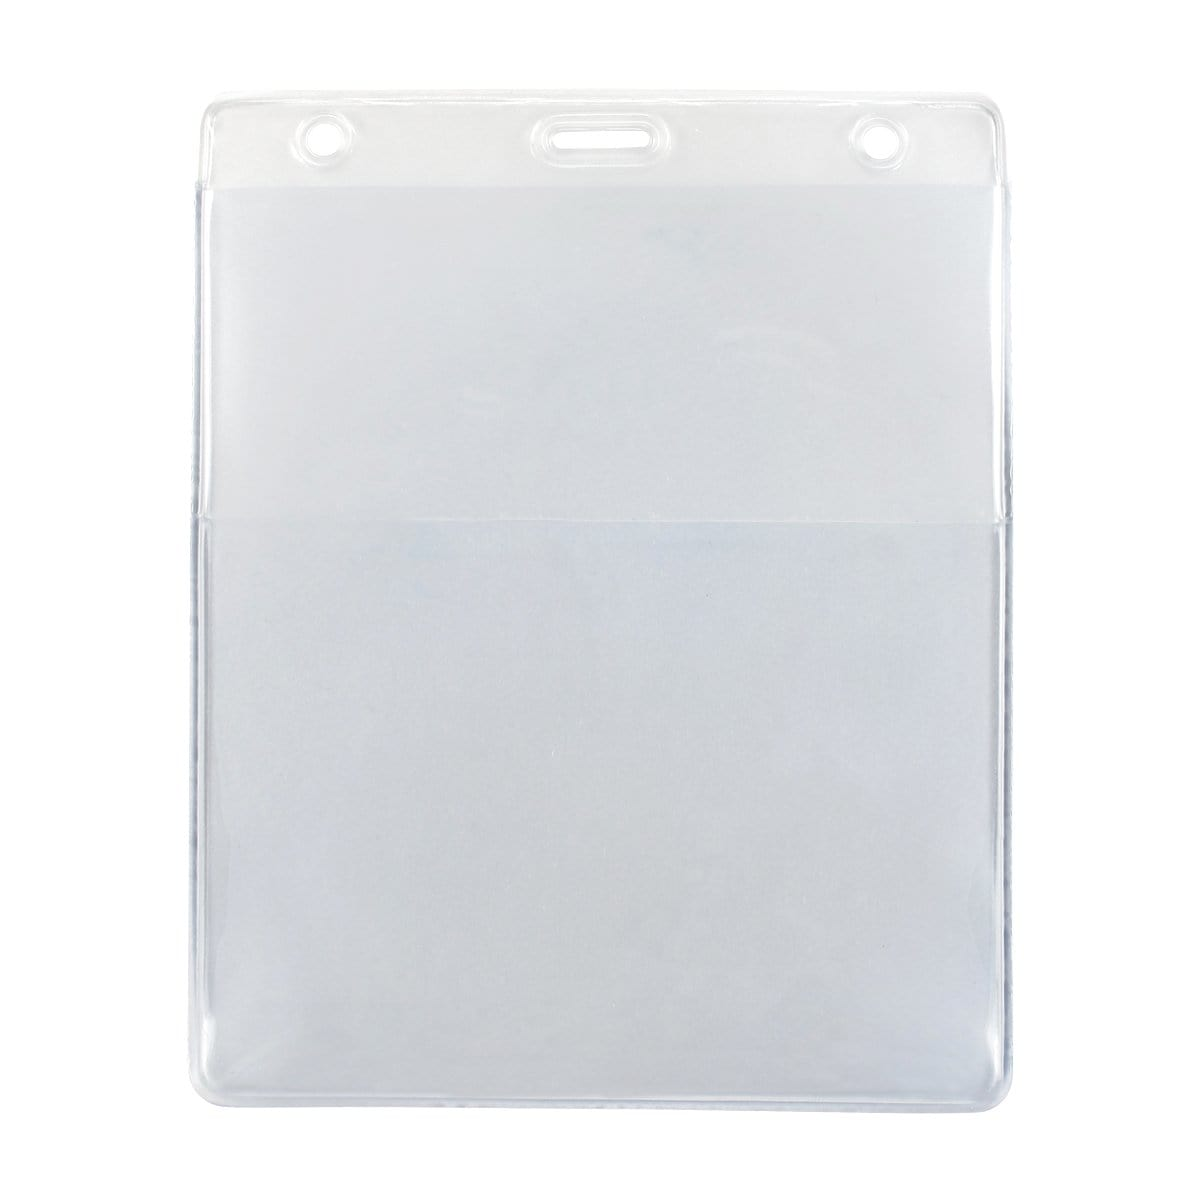 Clear Vertical Event Vinyl Credential Wallet With Two Pockets 4x5 and 4x3 (1860-4000)